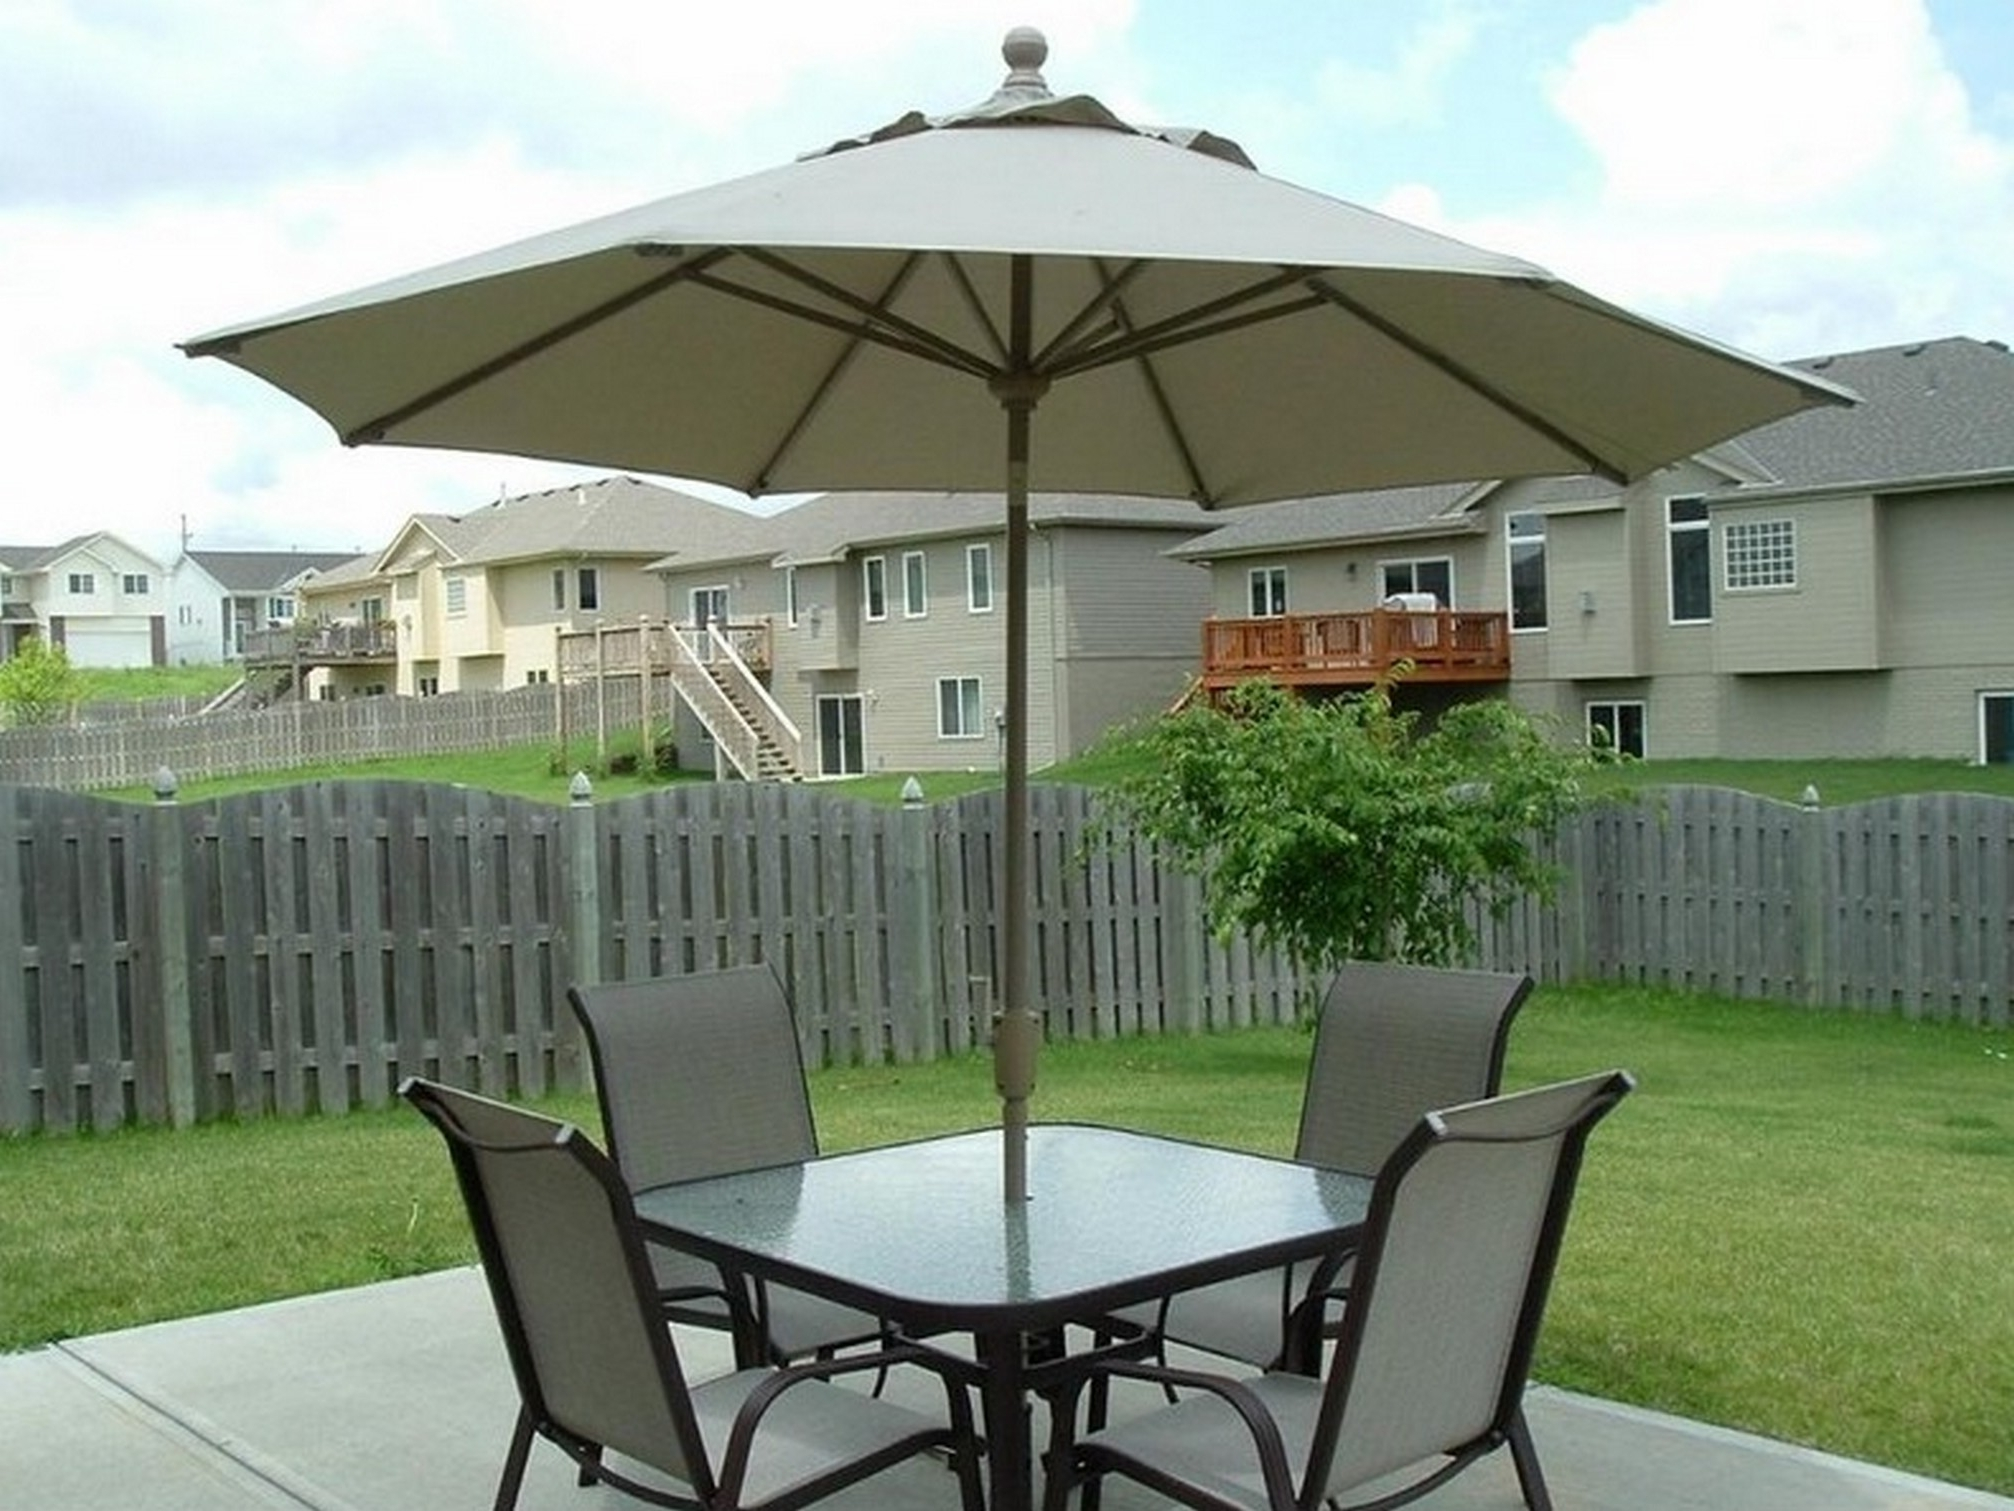 Patio: Astounding Patio Table And Chairs With Umbrella Outdoor Inside Latest Patio Umbrellas For Tables (View 16 of 20)